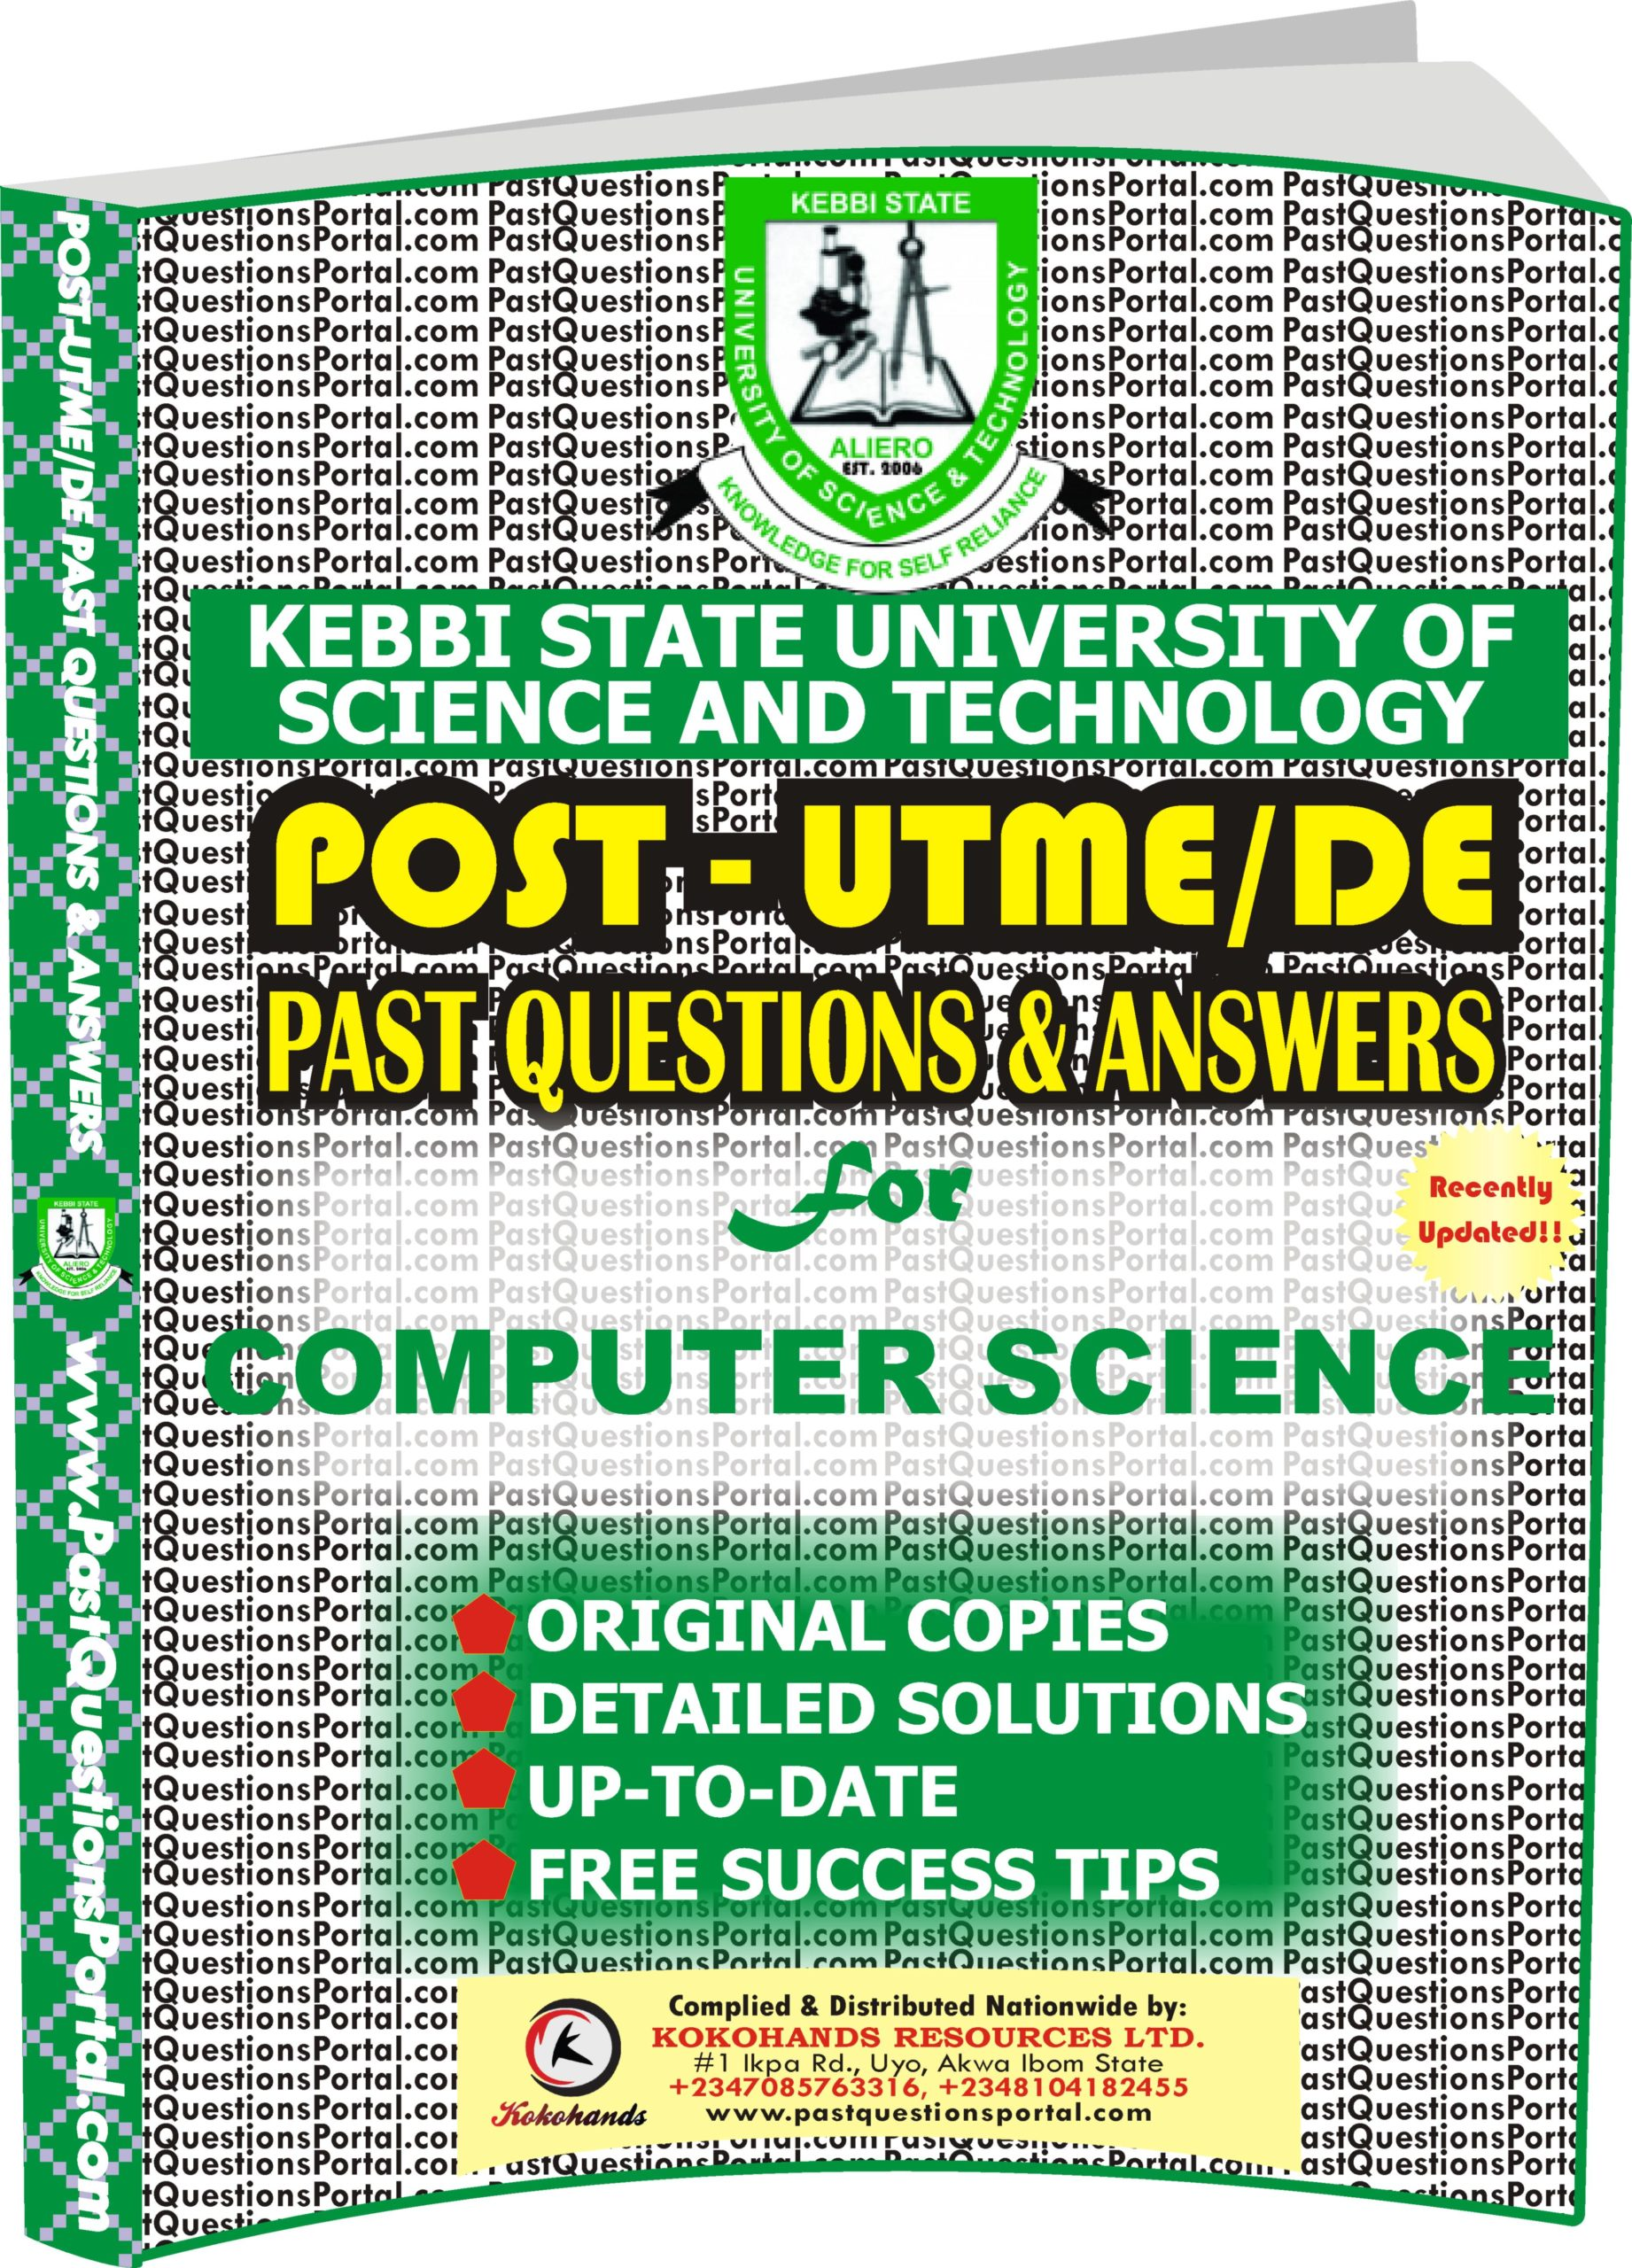 KSUSTA Post UTME Past Questions for COMPUTER SCIENCE